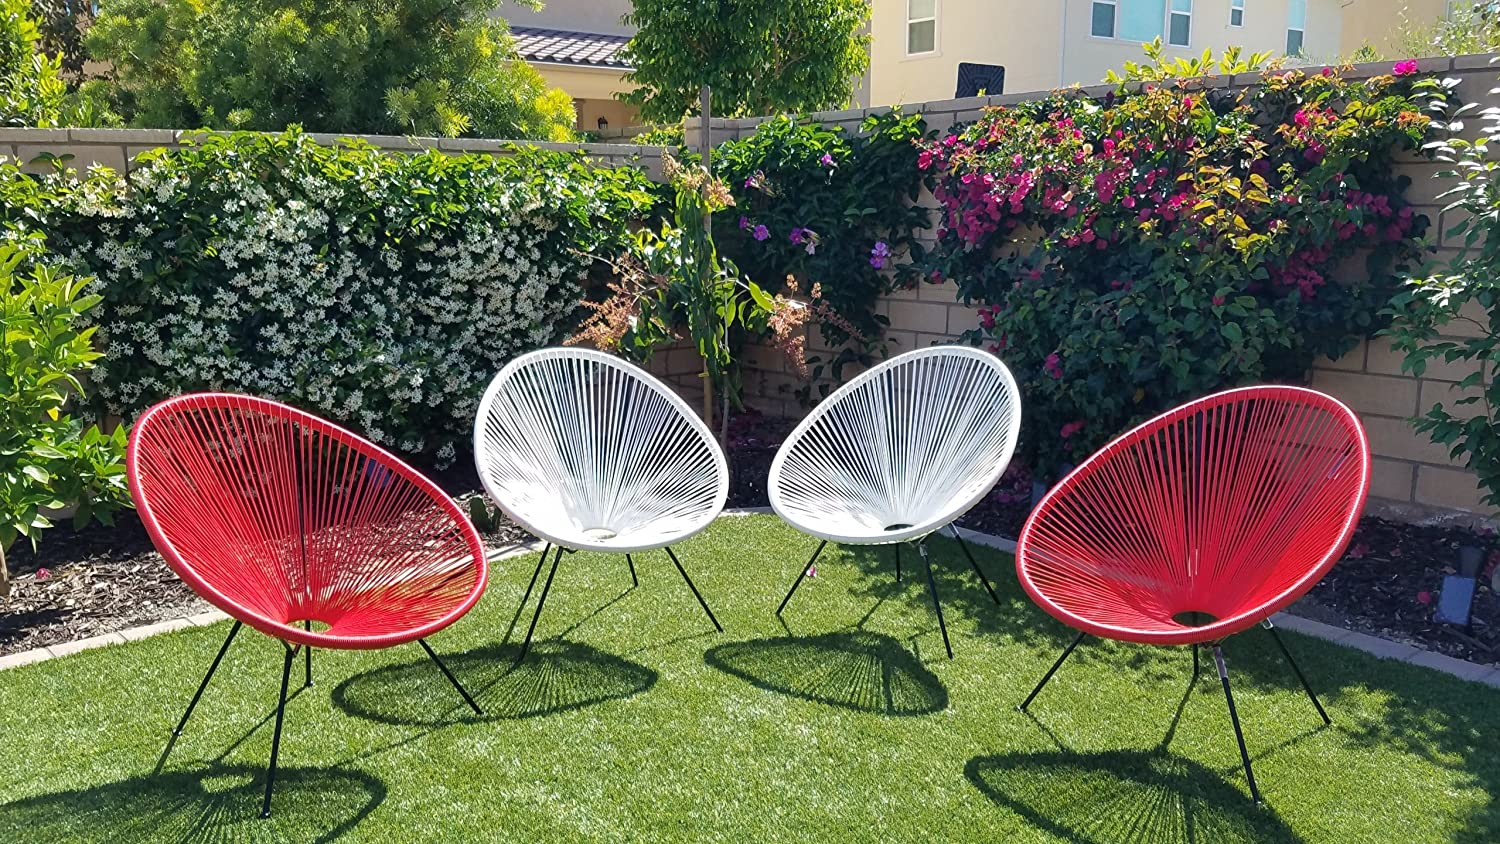 Acapulco Chair Indoor Outdoor Lounge Chair Weave Patio Chair All Weather Outdoor Patio Sun Oval Chair,Red,4 Piece Set